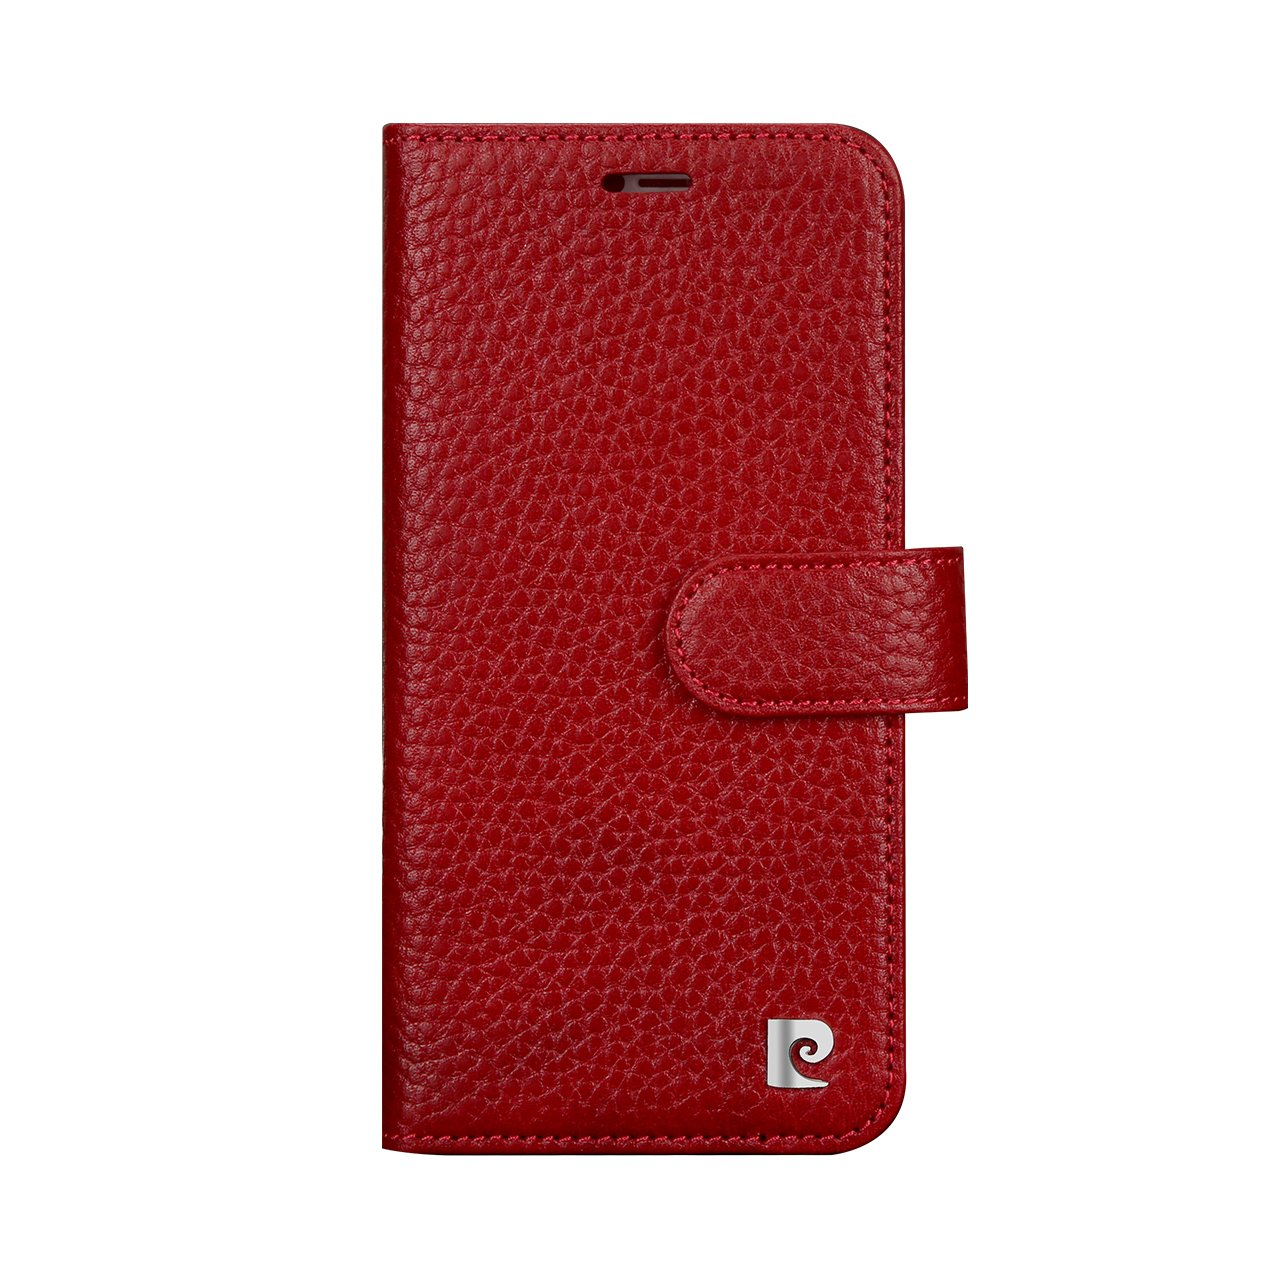 Pierre Cardin Wallet Case Premium Genuine Leather Folio Cover with Credit Card Flip Money Cash Kickstand Detachable Design Slots for Apple iPhone X (Red) by Pierre Cardin (Image #2)